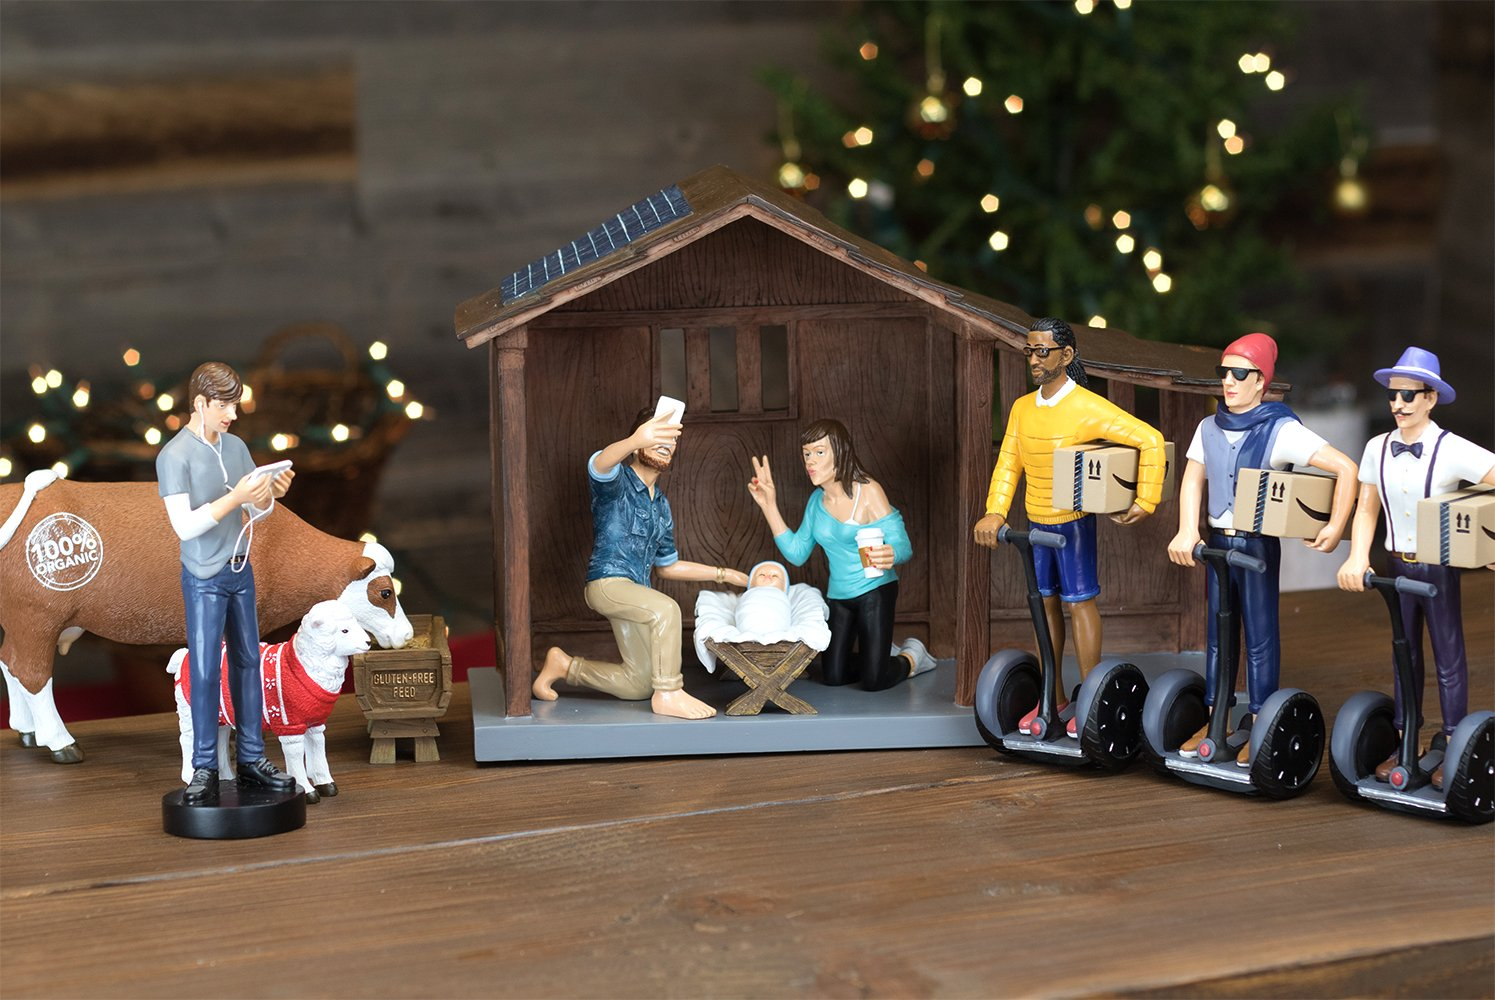 "Millennial Nativity Figurine and Stable Set - Hipster Nativity Scene - Holiday Gifts - Christmas Gifts - Each Piece 100% Hand Painted and Made of Durable Polyresin - 7"" Figurines - Full Set by Modern Nativity"